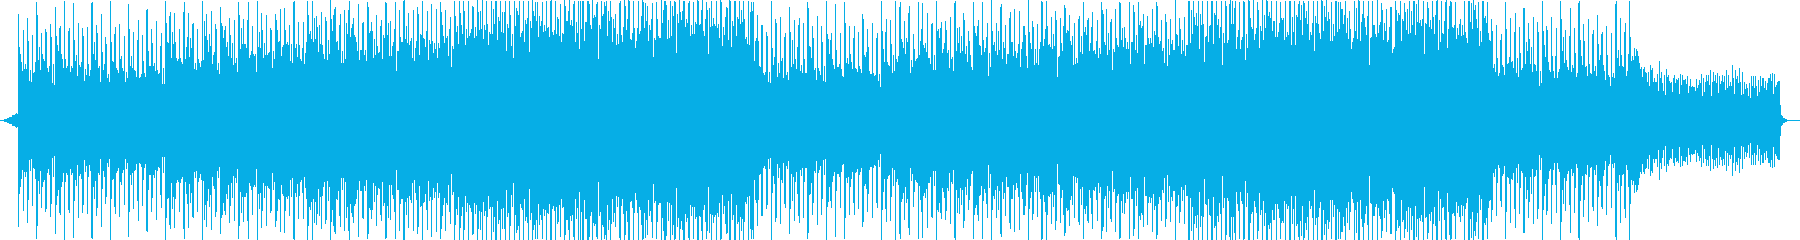 A magnificent and moving refreshing piano company VP Pop's reproduced waveform